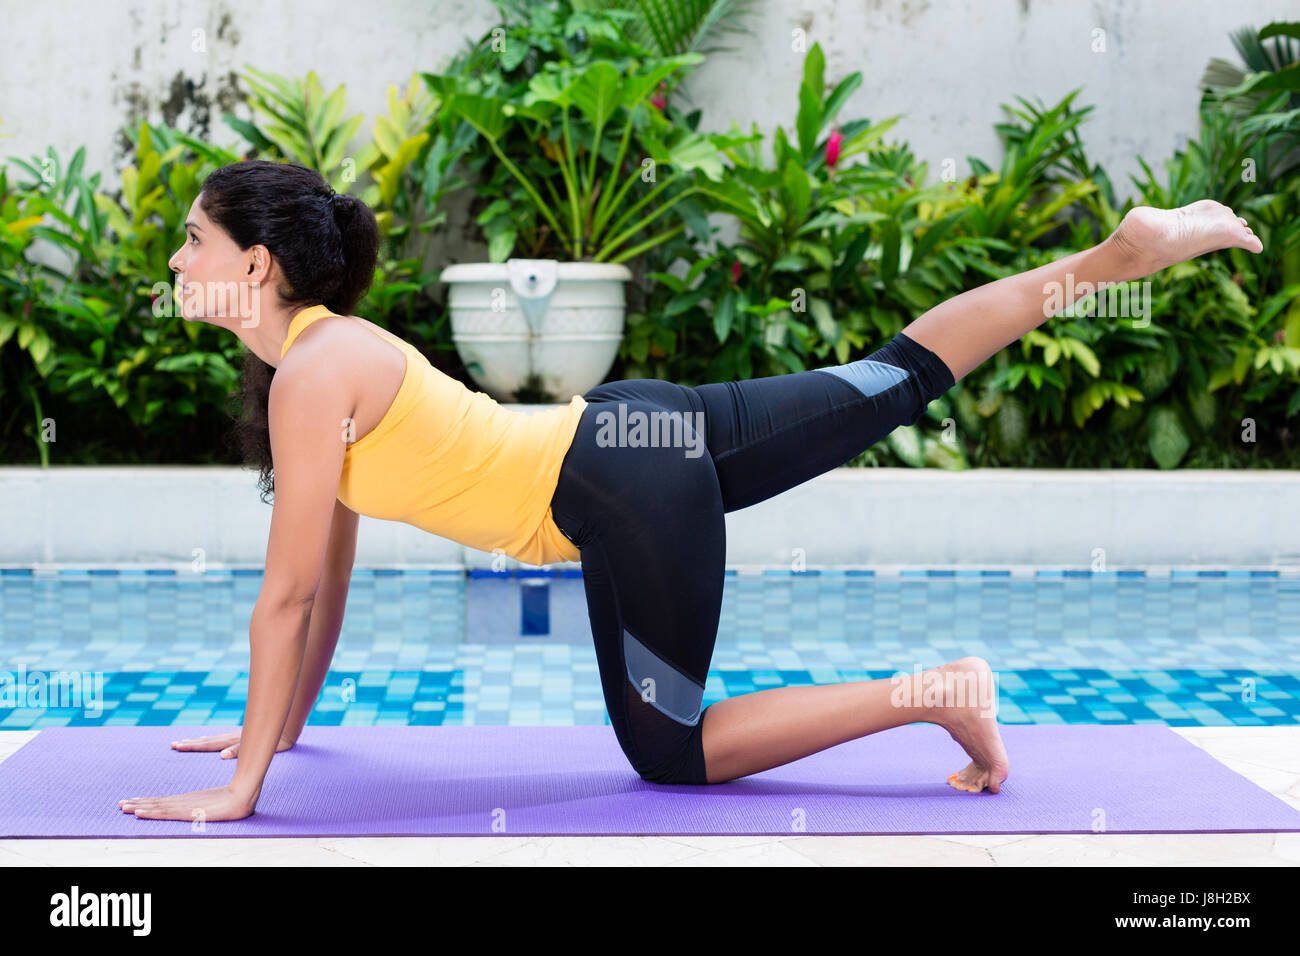 Young woman exercising for lower body workout - Stock Image